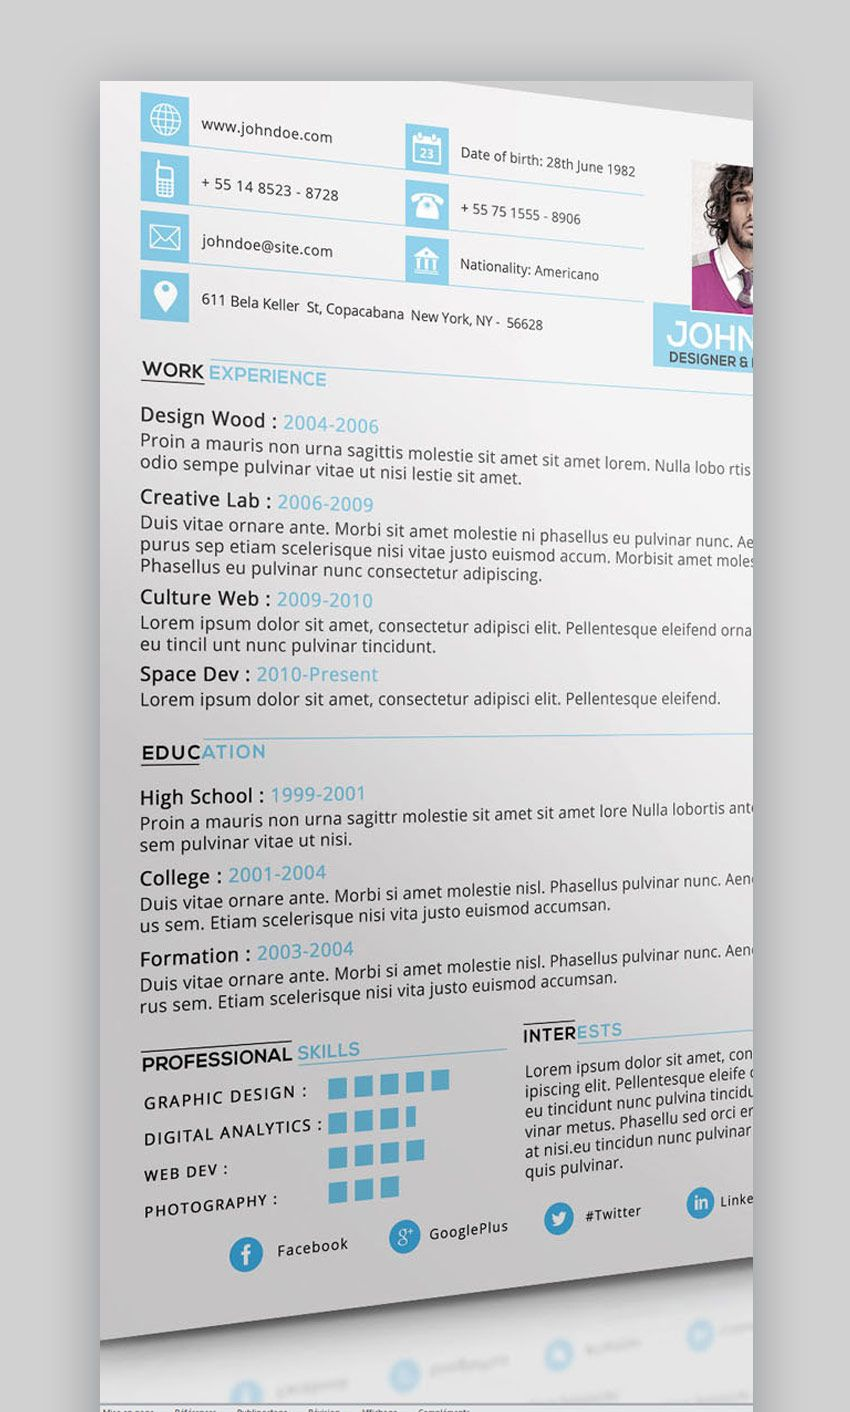 20 best job resume templates with simple designs (2018 food server sample career objective for experienced mechanical engineer seek profile summary examples